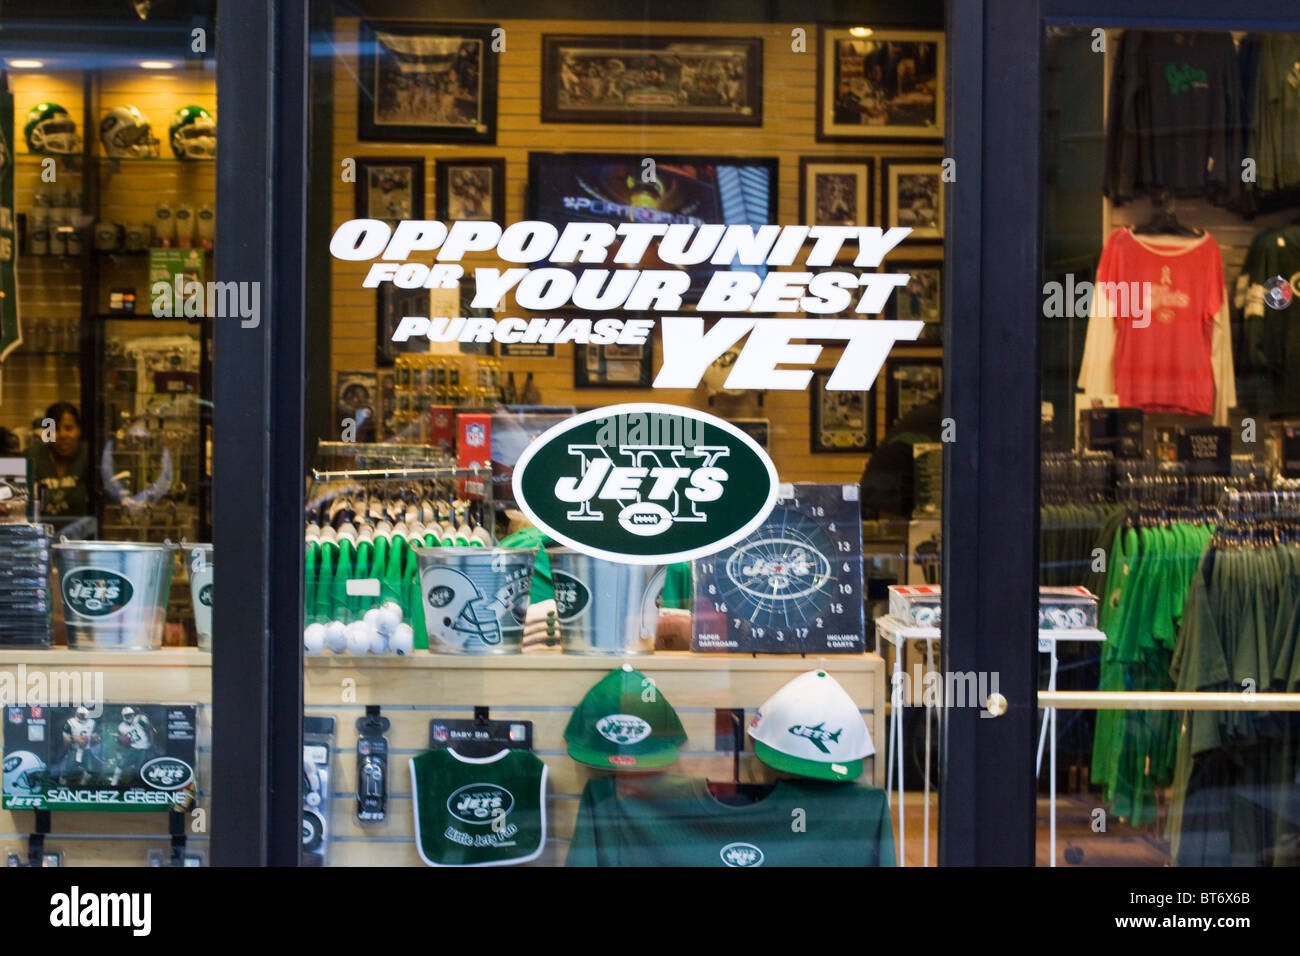 c6e97084 New York Jets Shop in New York City Stock Photo: 32114387 - Alamy